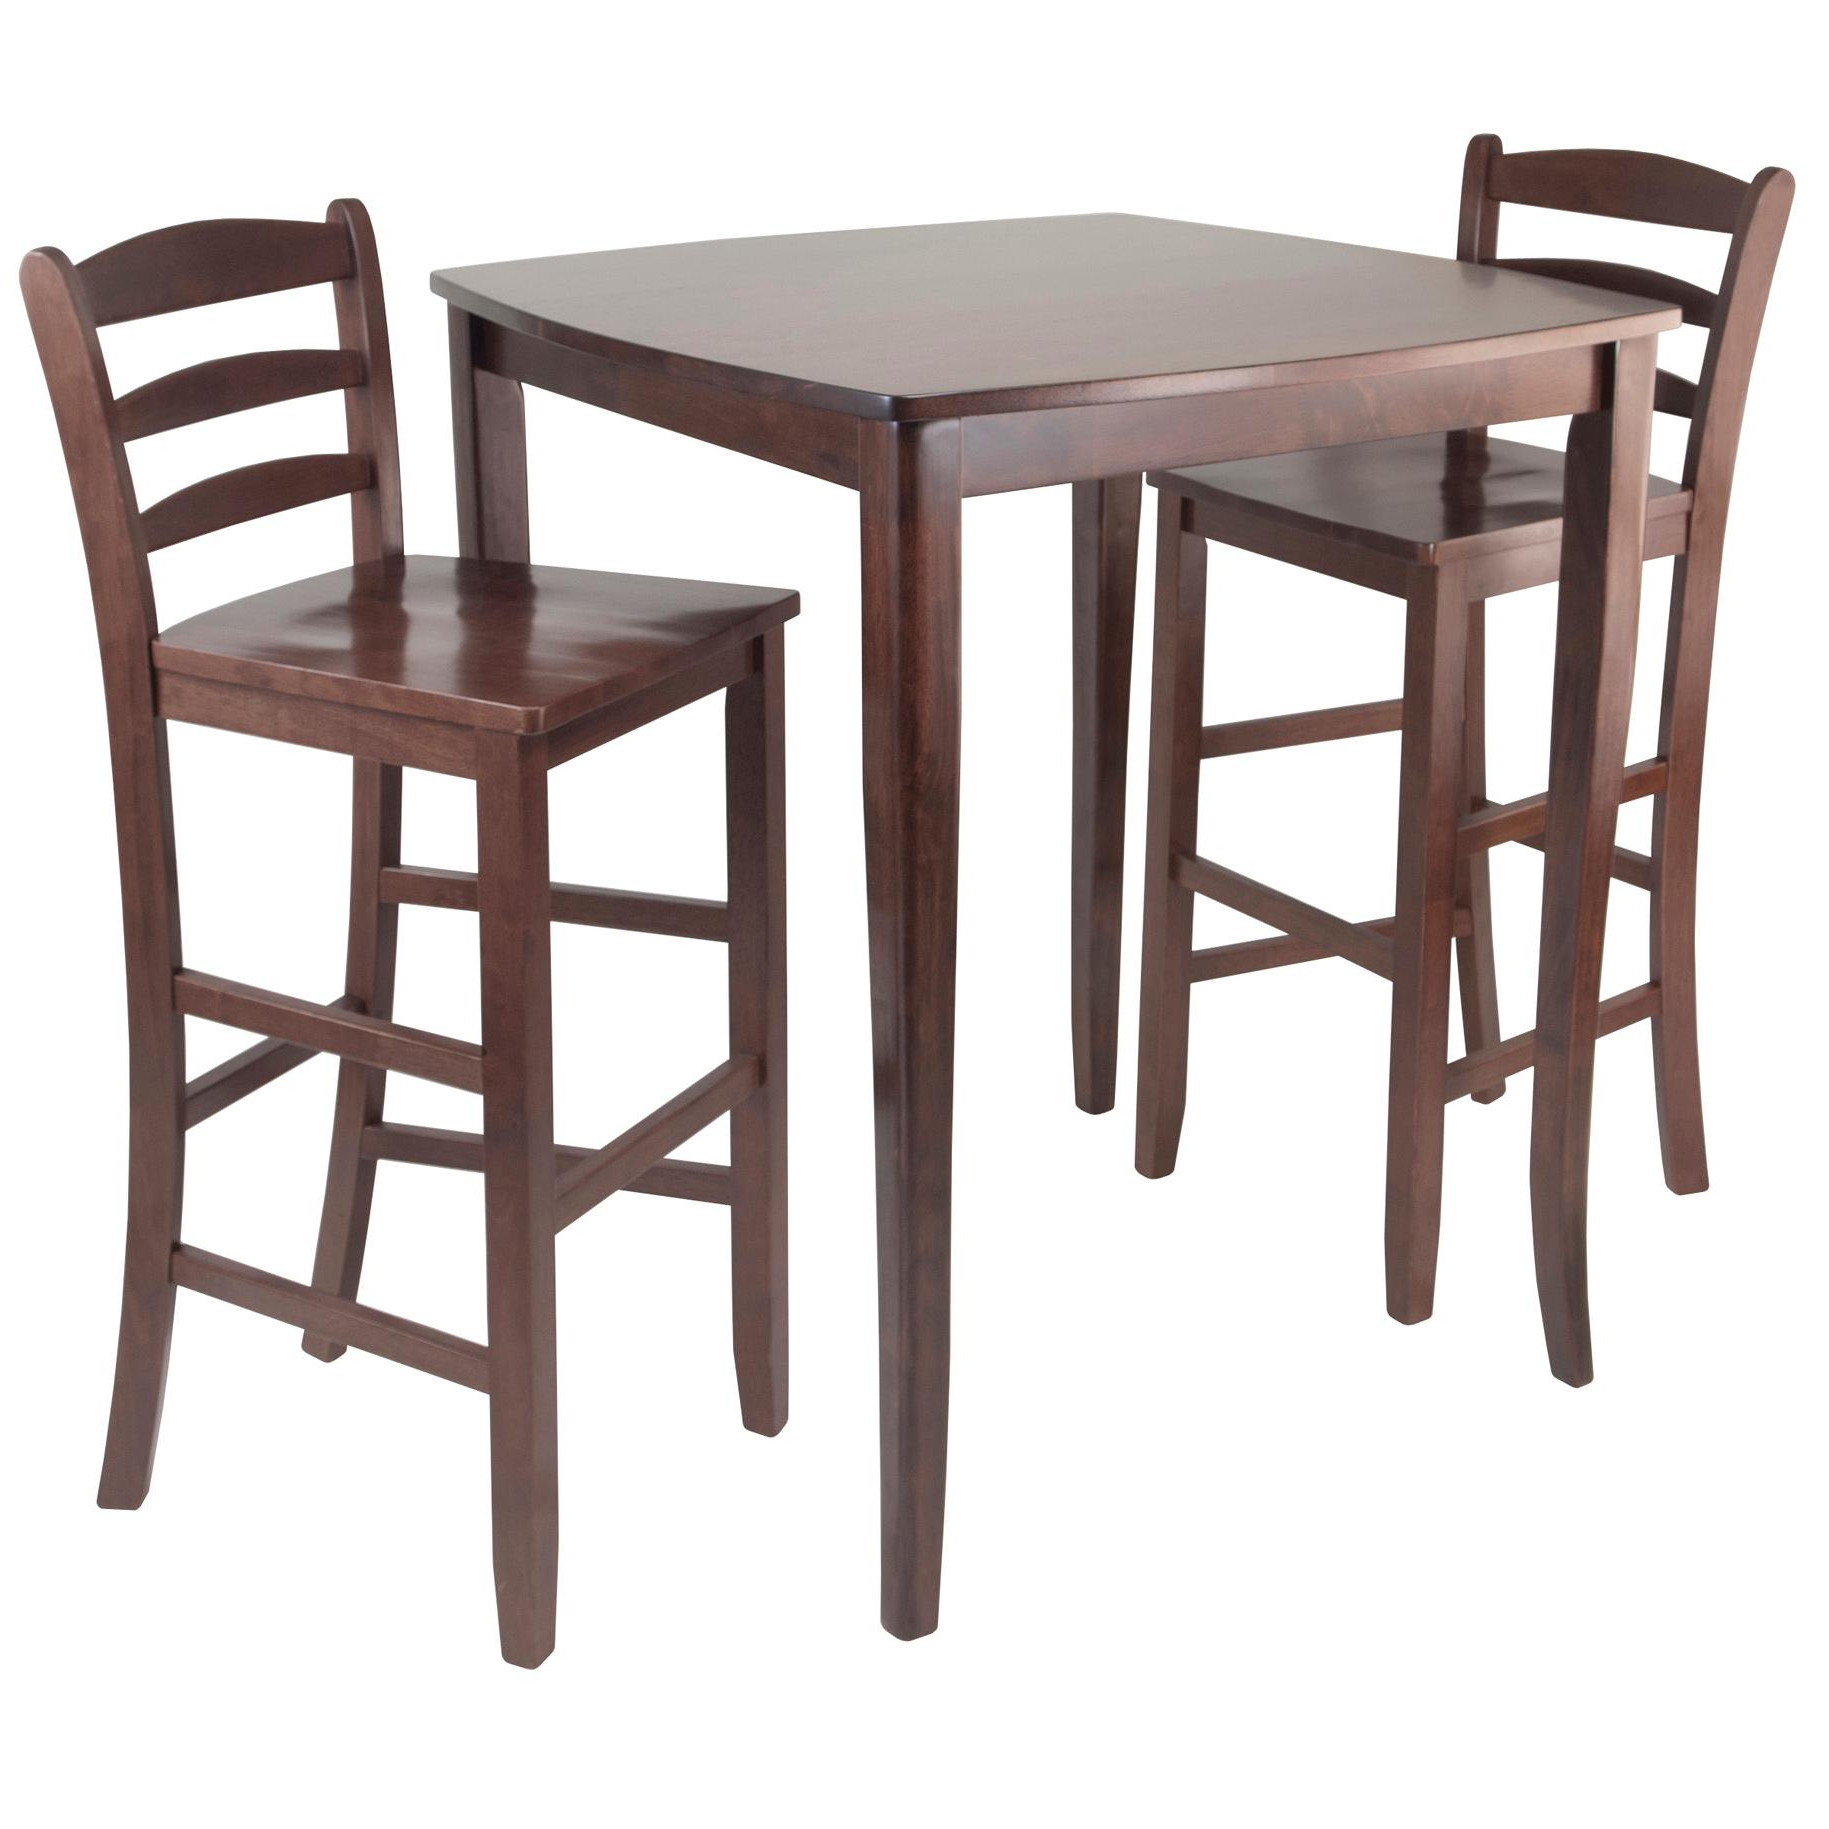 Winsome Inglewood High/pub Dining Table With Ladder Back Stool, 3 Piece In Well Known Winsome 3 Piece Counter Height Dining Sets (View 4 of 20)